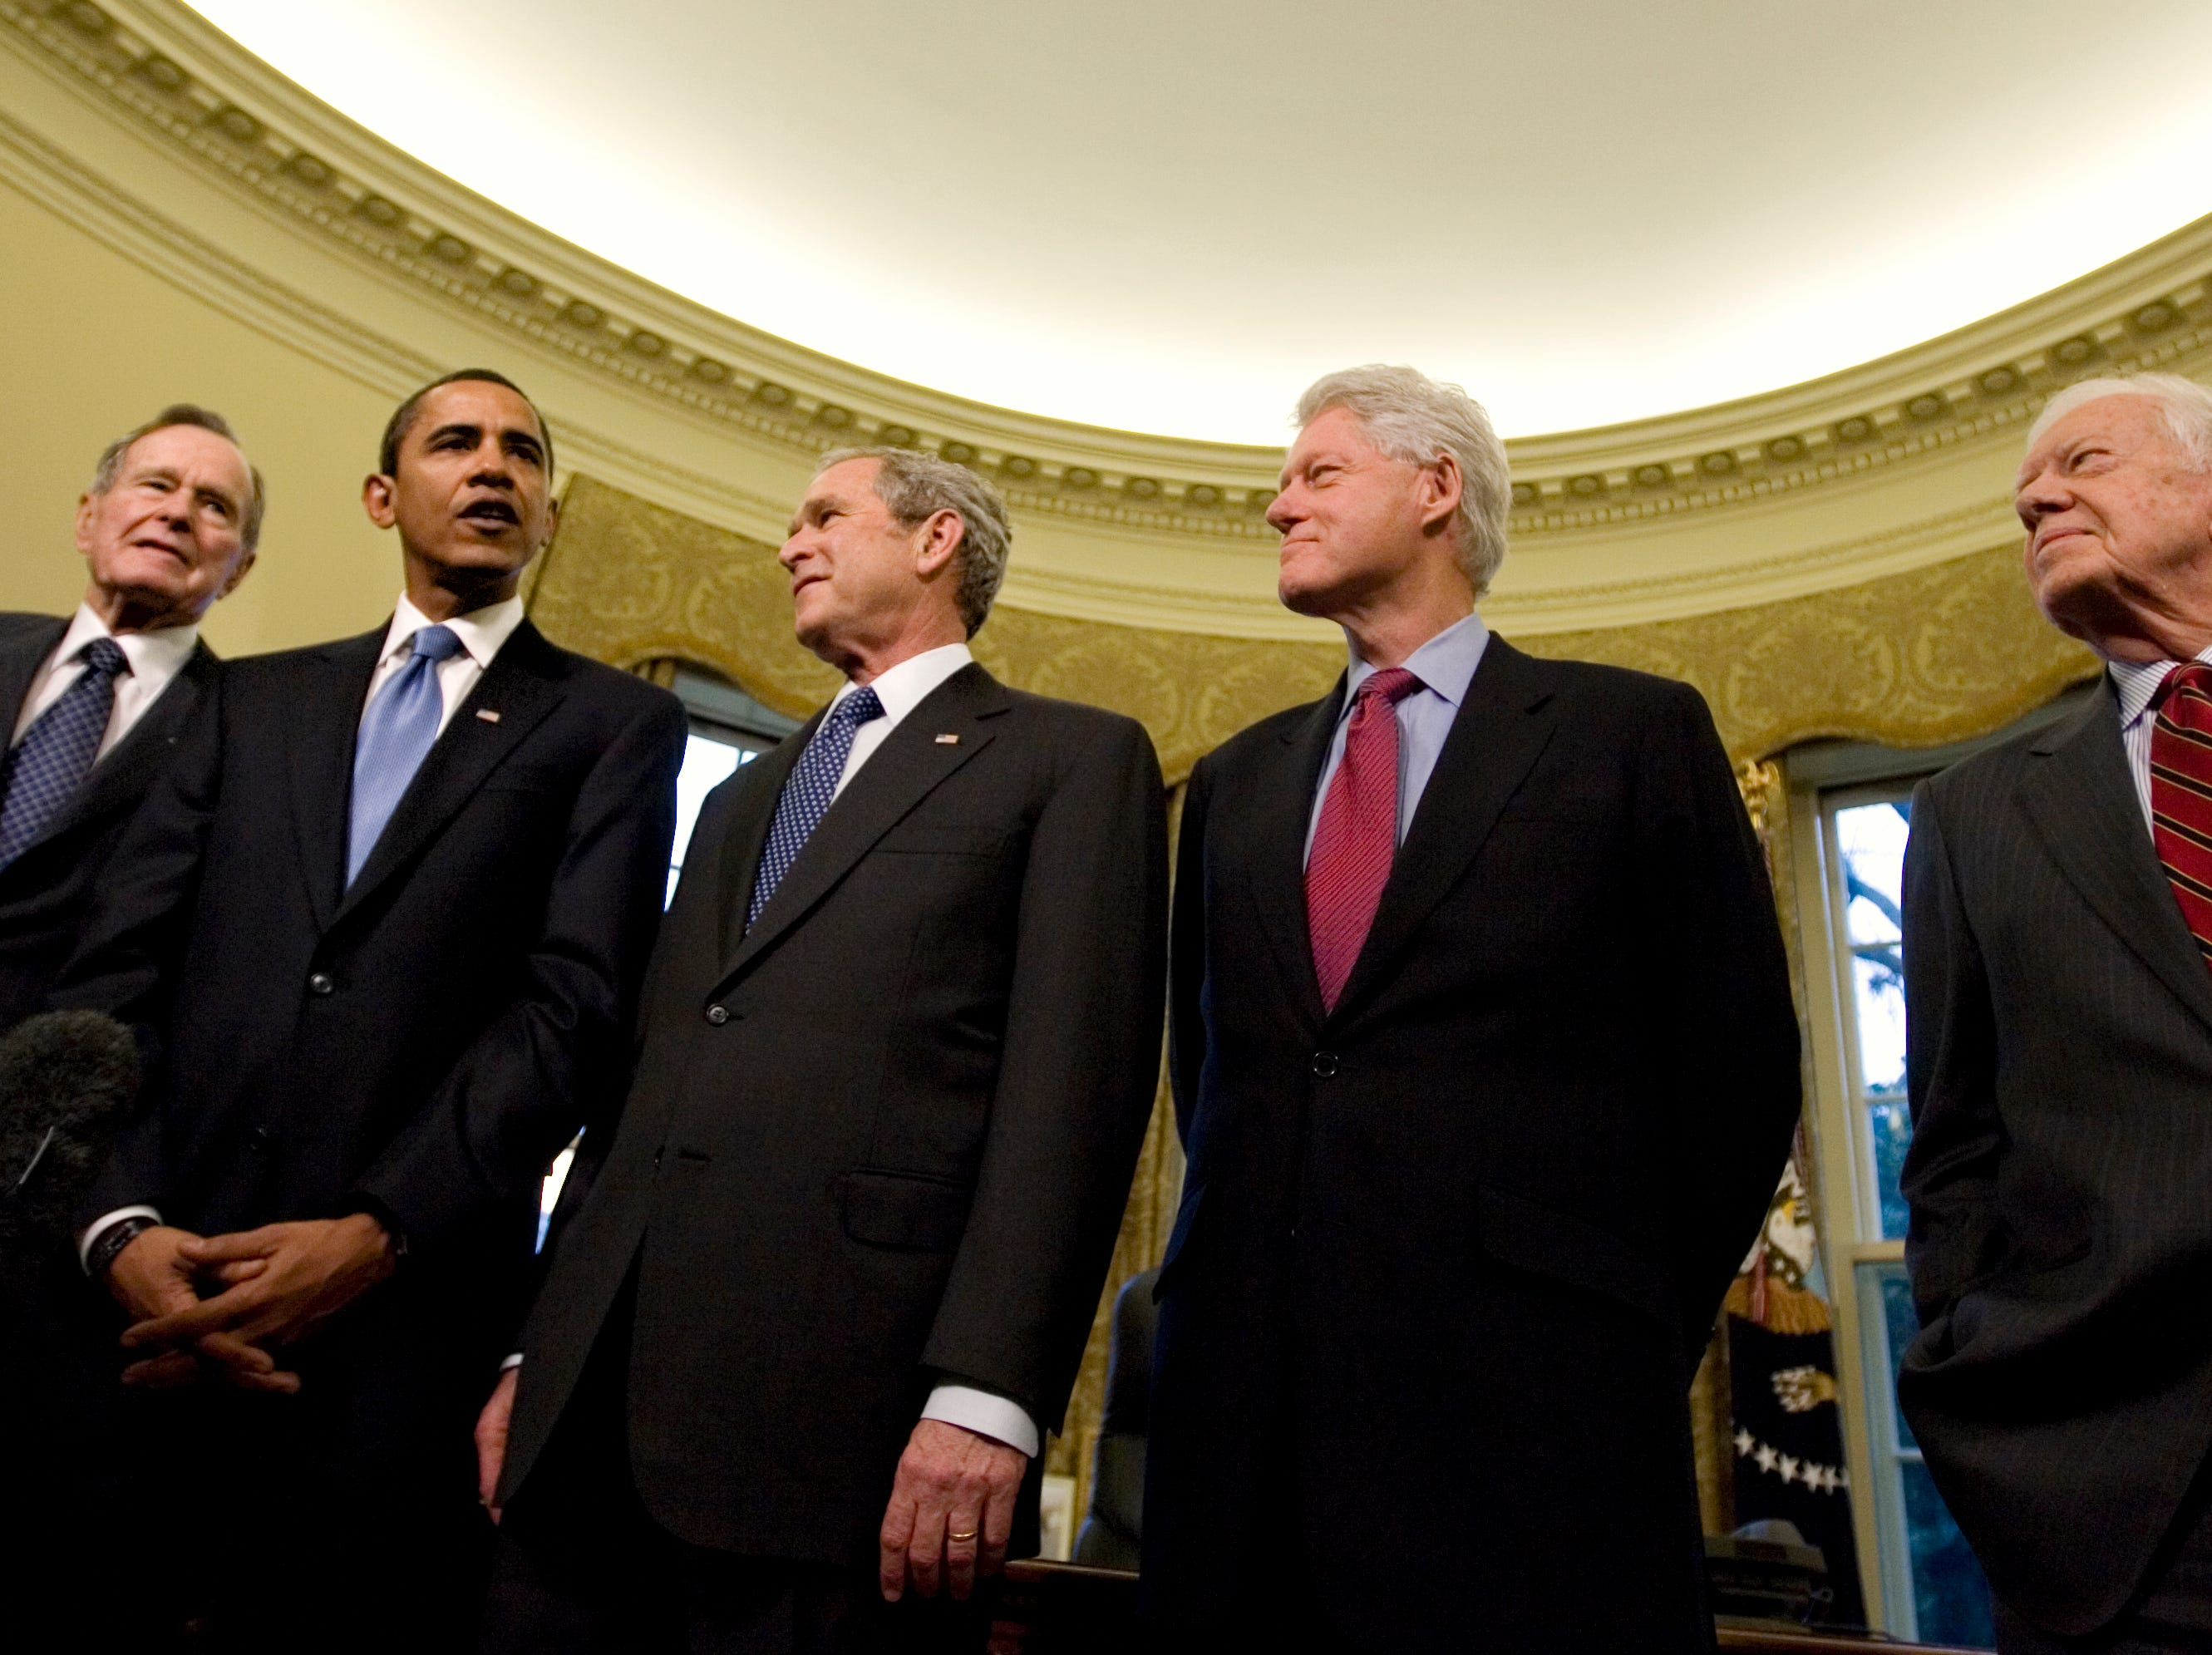 President George W. Bush hosts President-elect Barack Obama, and former presidents, from left, George H.W. Bush,  Bill Clinton and Jimmy Carter, on Jan. 7, 2009, at the White House. The photograph is part of an Associated Press exhibit titled 'The American President' that will be on display at the Baker Center for Public Policy beginning Wednesday. (AP Photo/J. Scott Applewhite)